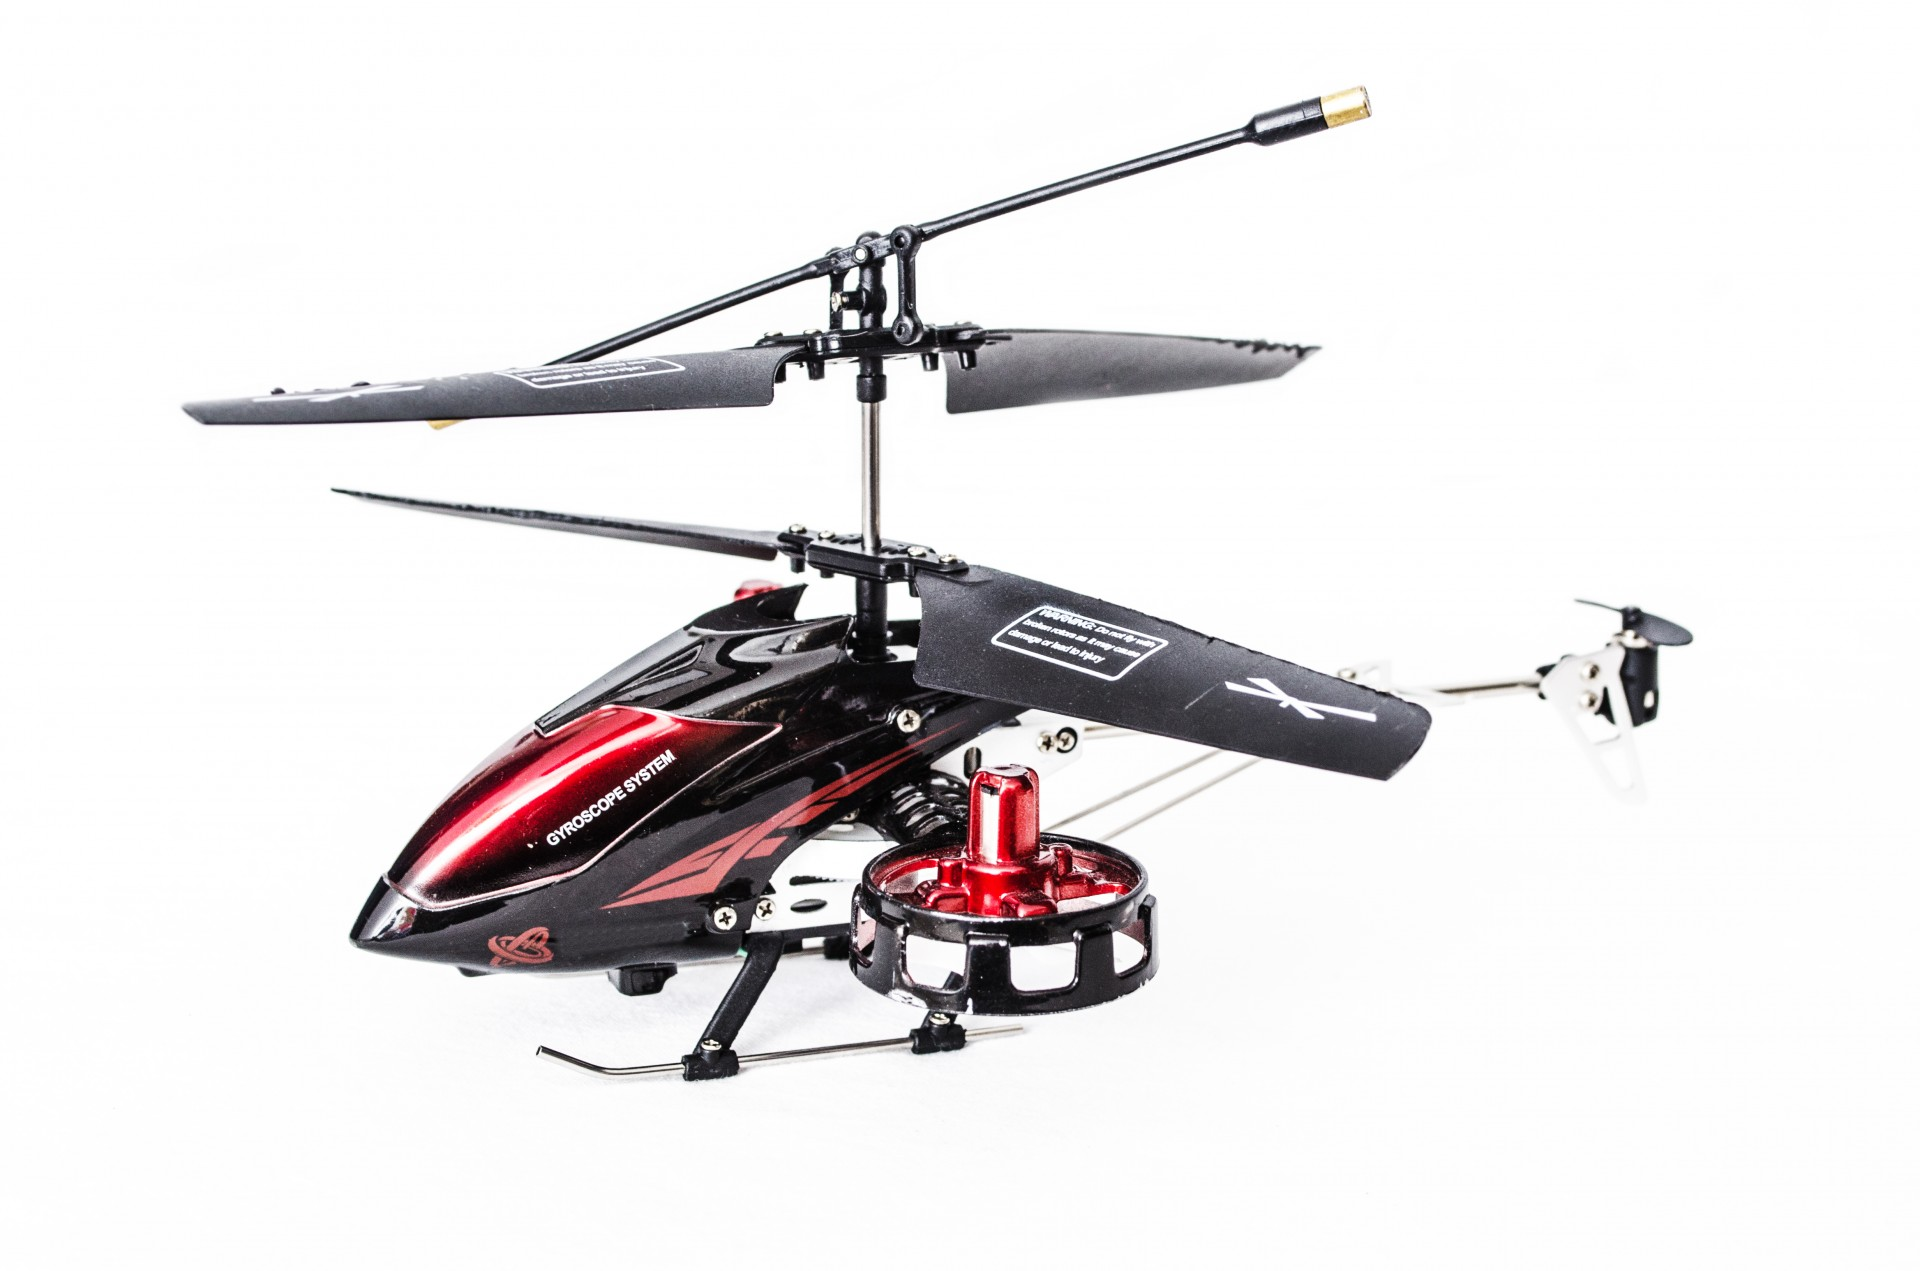 Remote Control Helicopter Train and Truck Toys 1920x1271